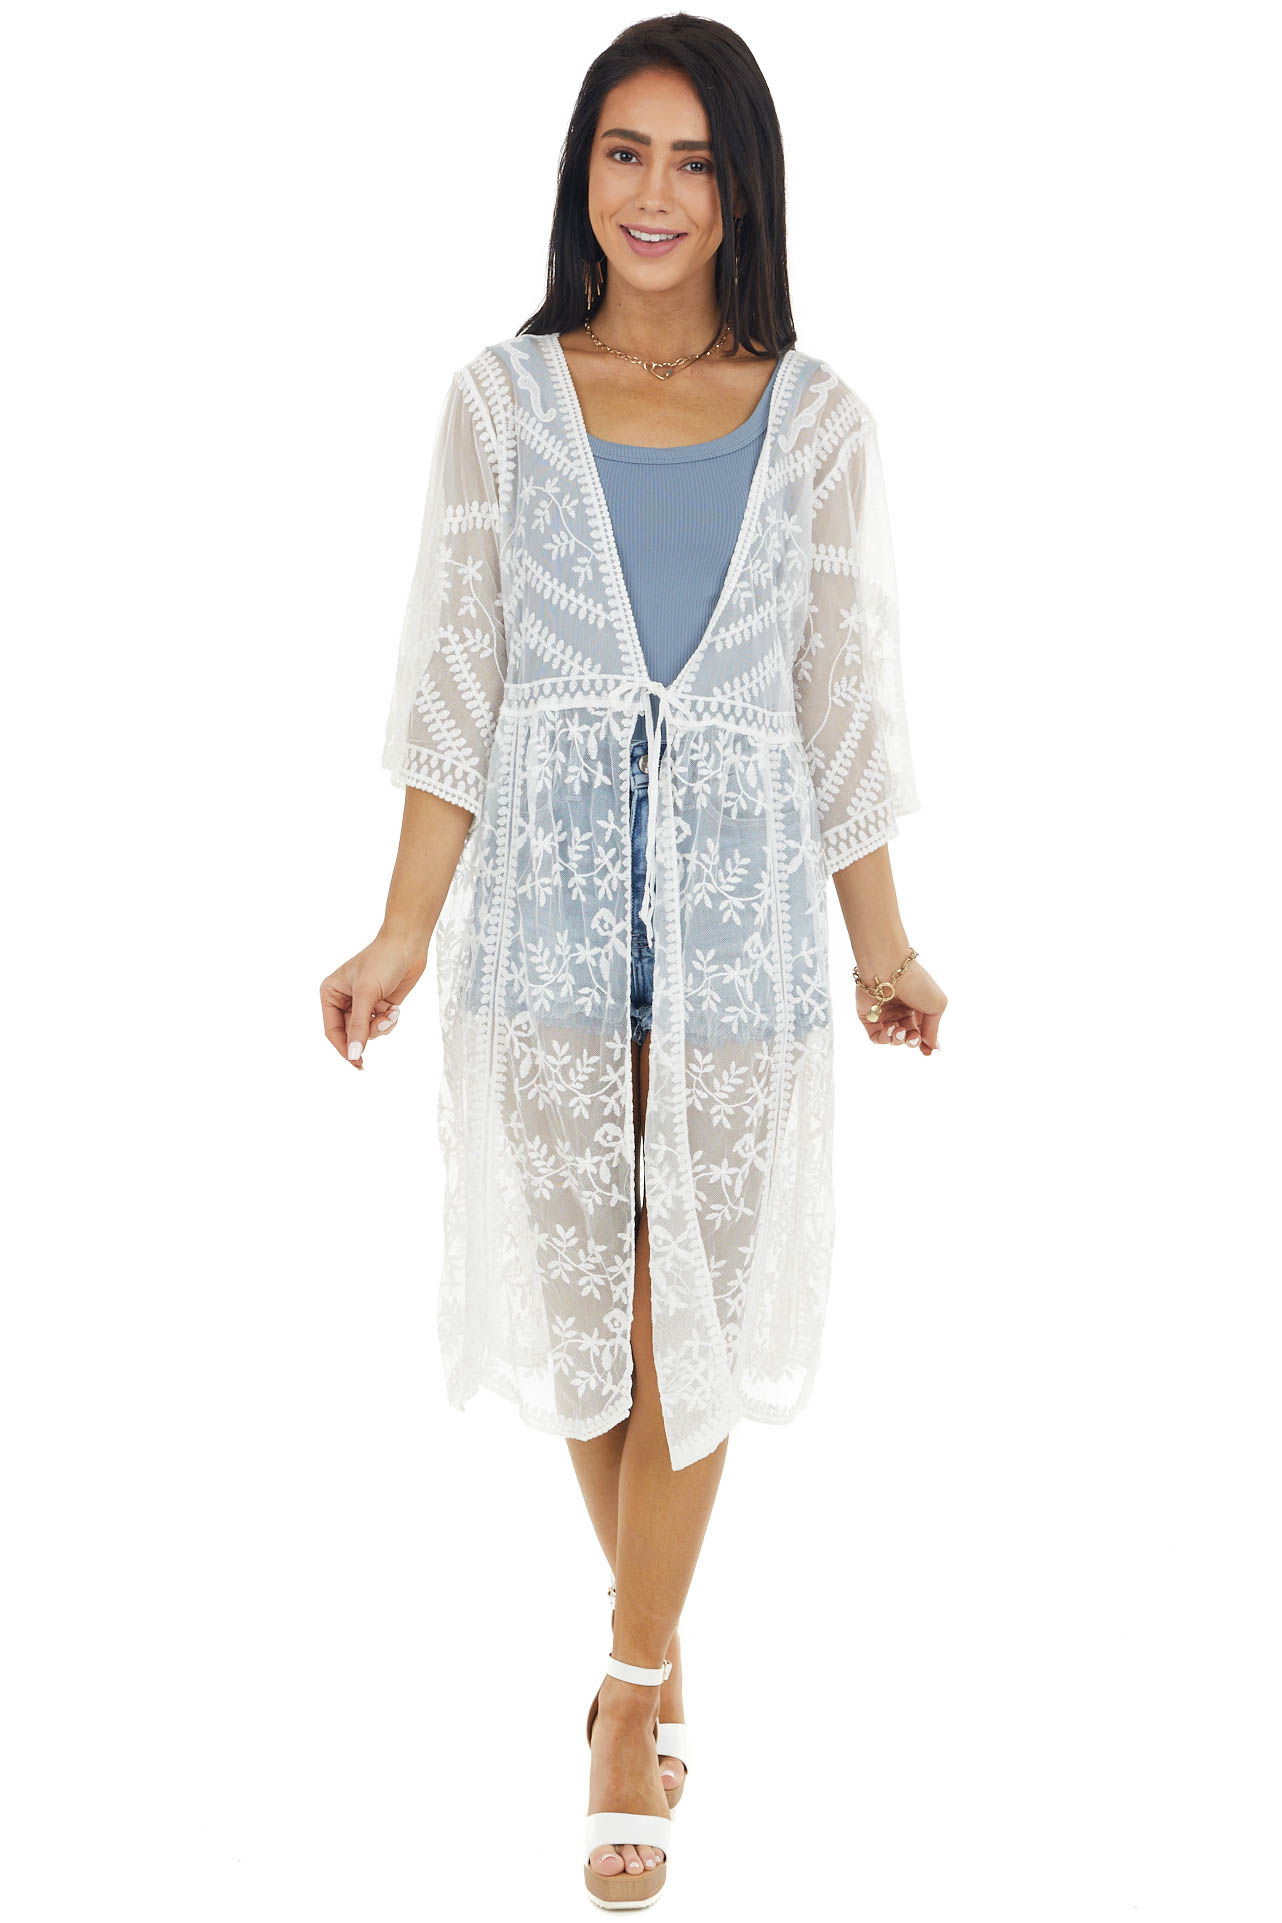 Eggshell Floral Lace Sheer Kimono with Front Tie Detail